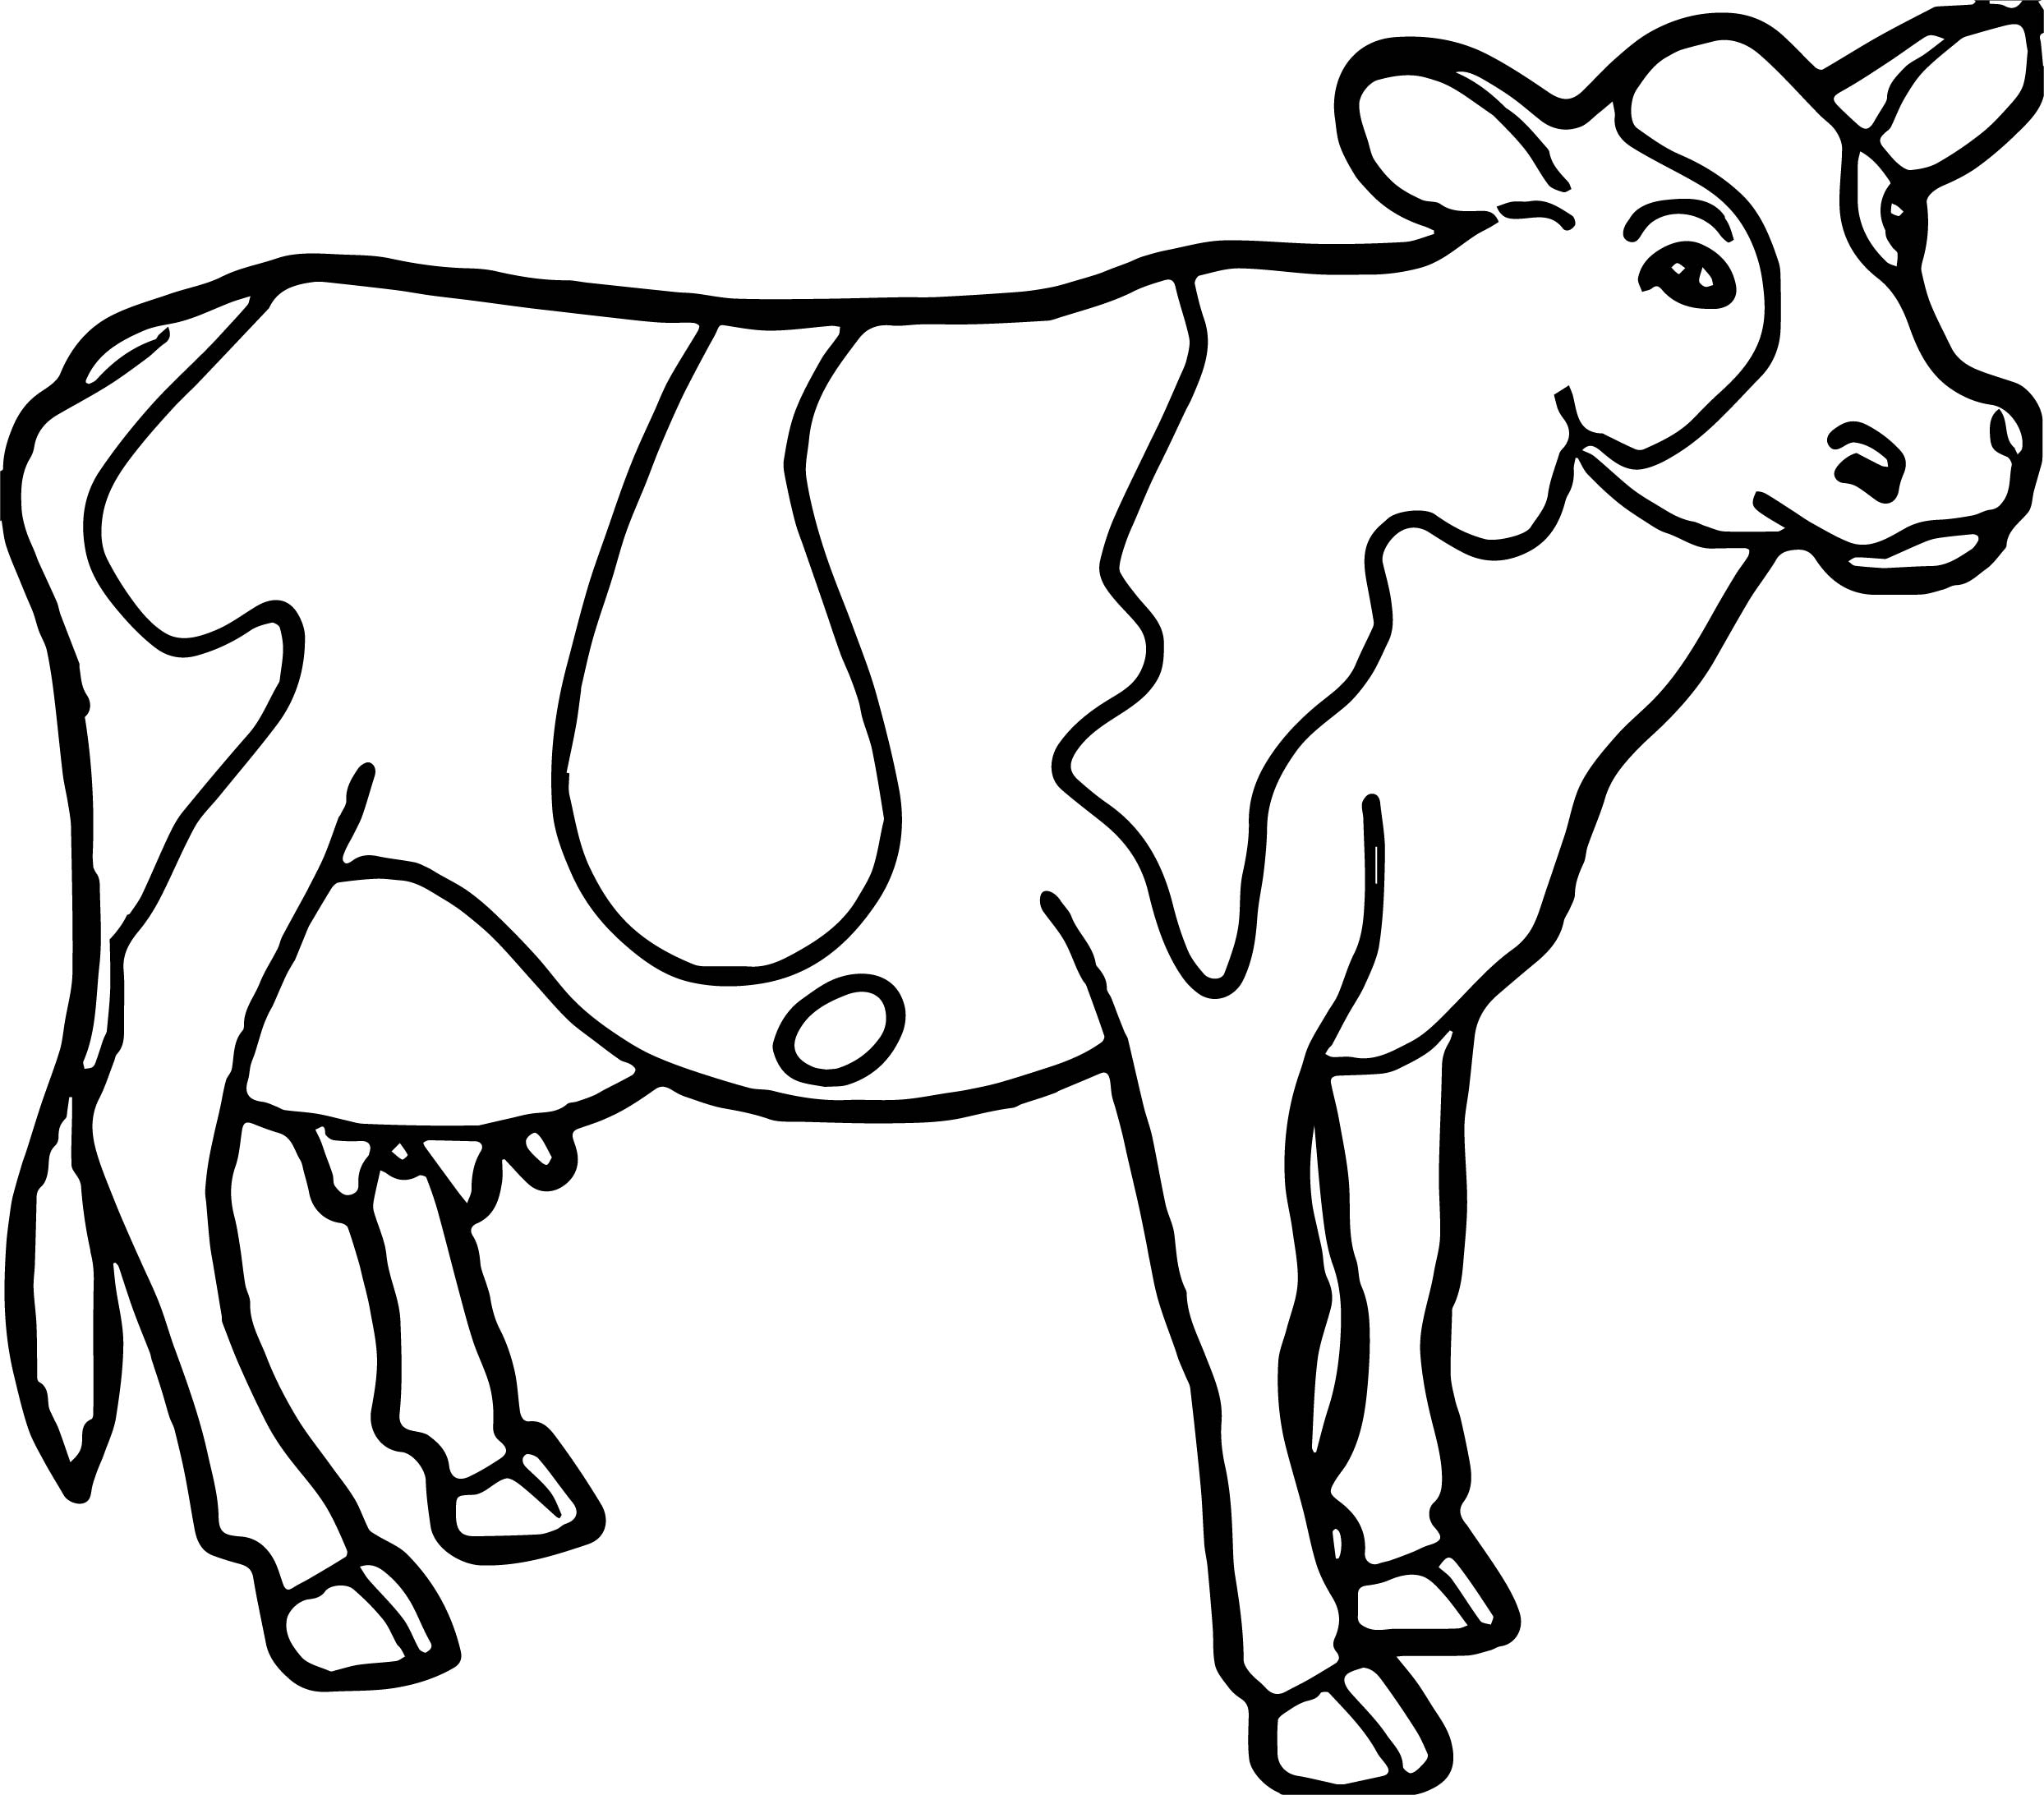 Free Cowboy Cow Coloring Pages